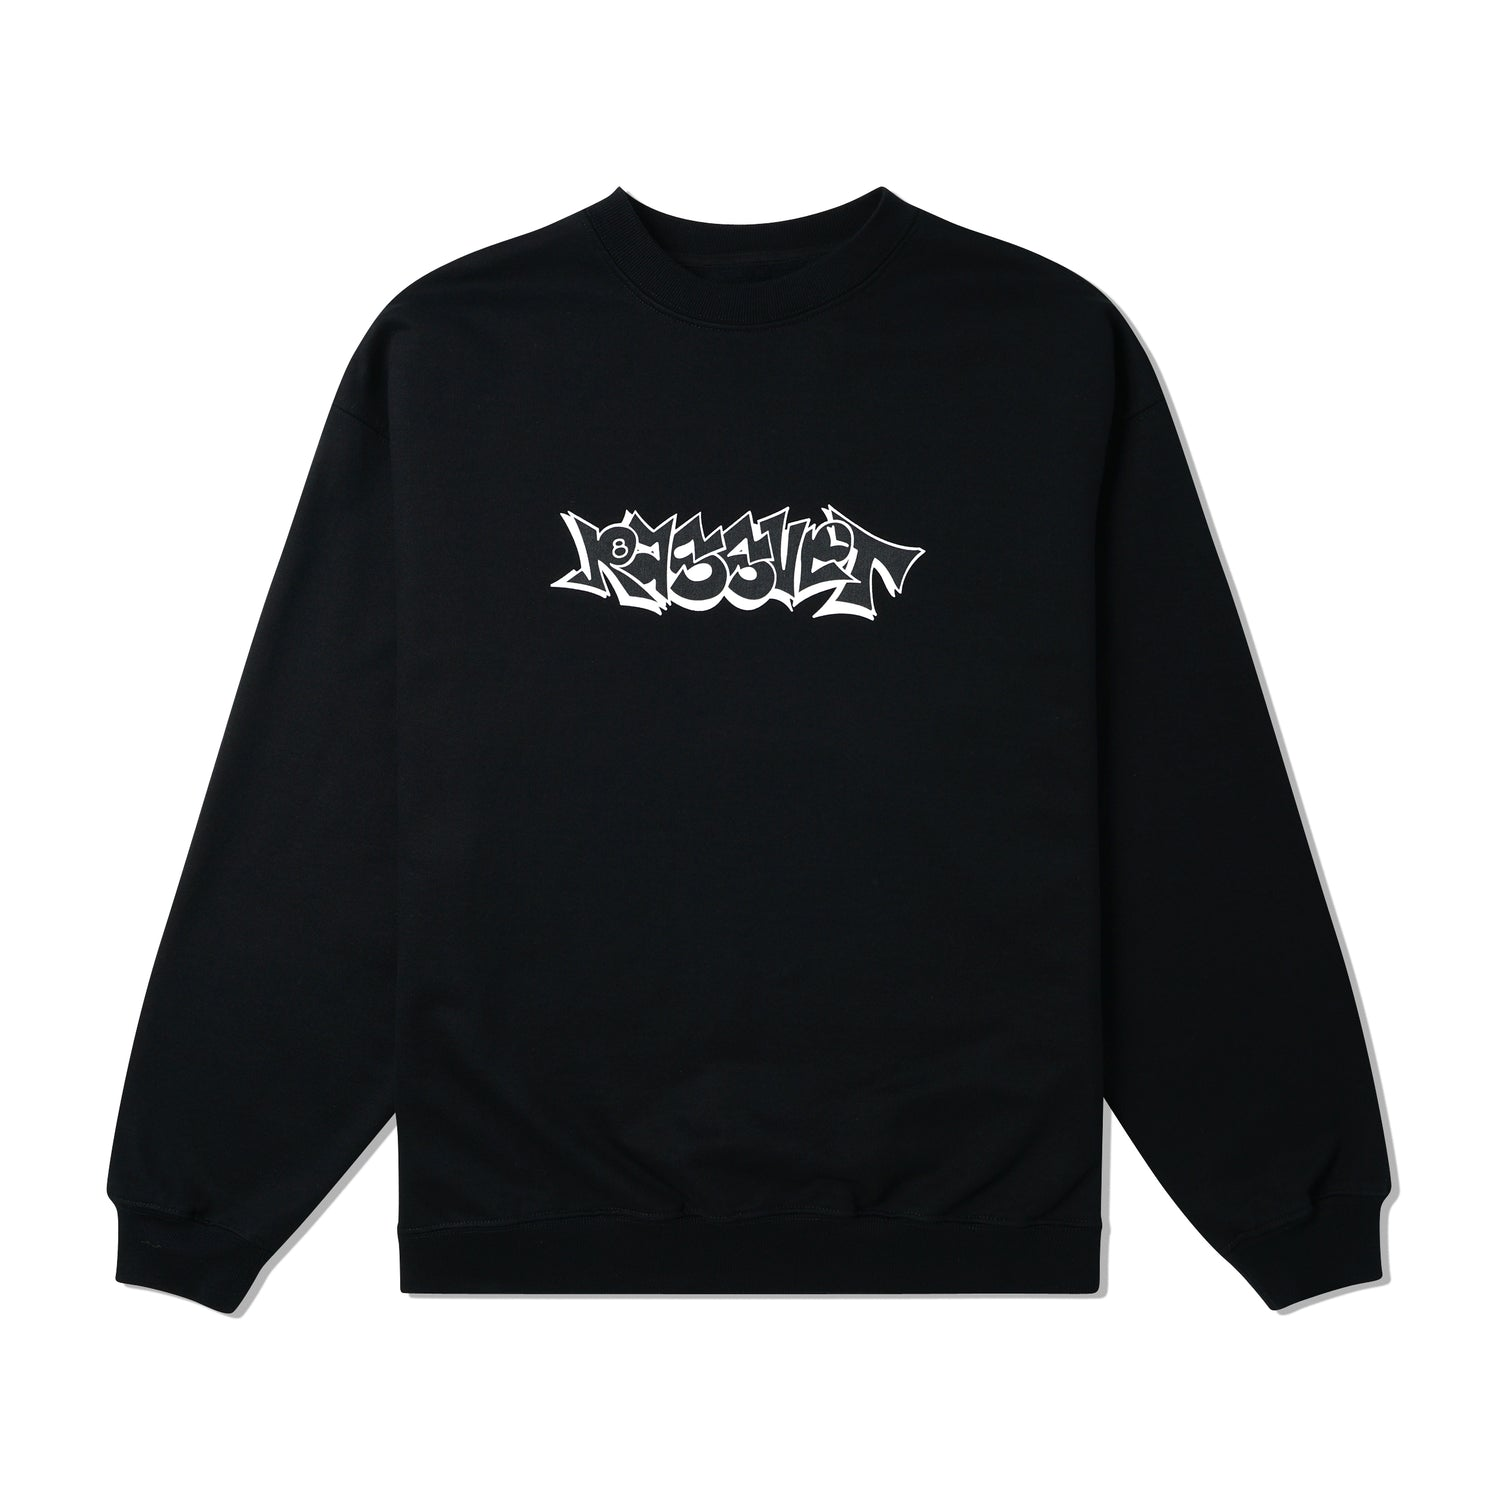 Graffiti Crewneck, Black